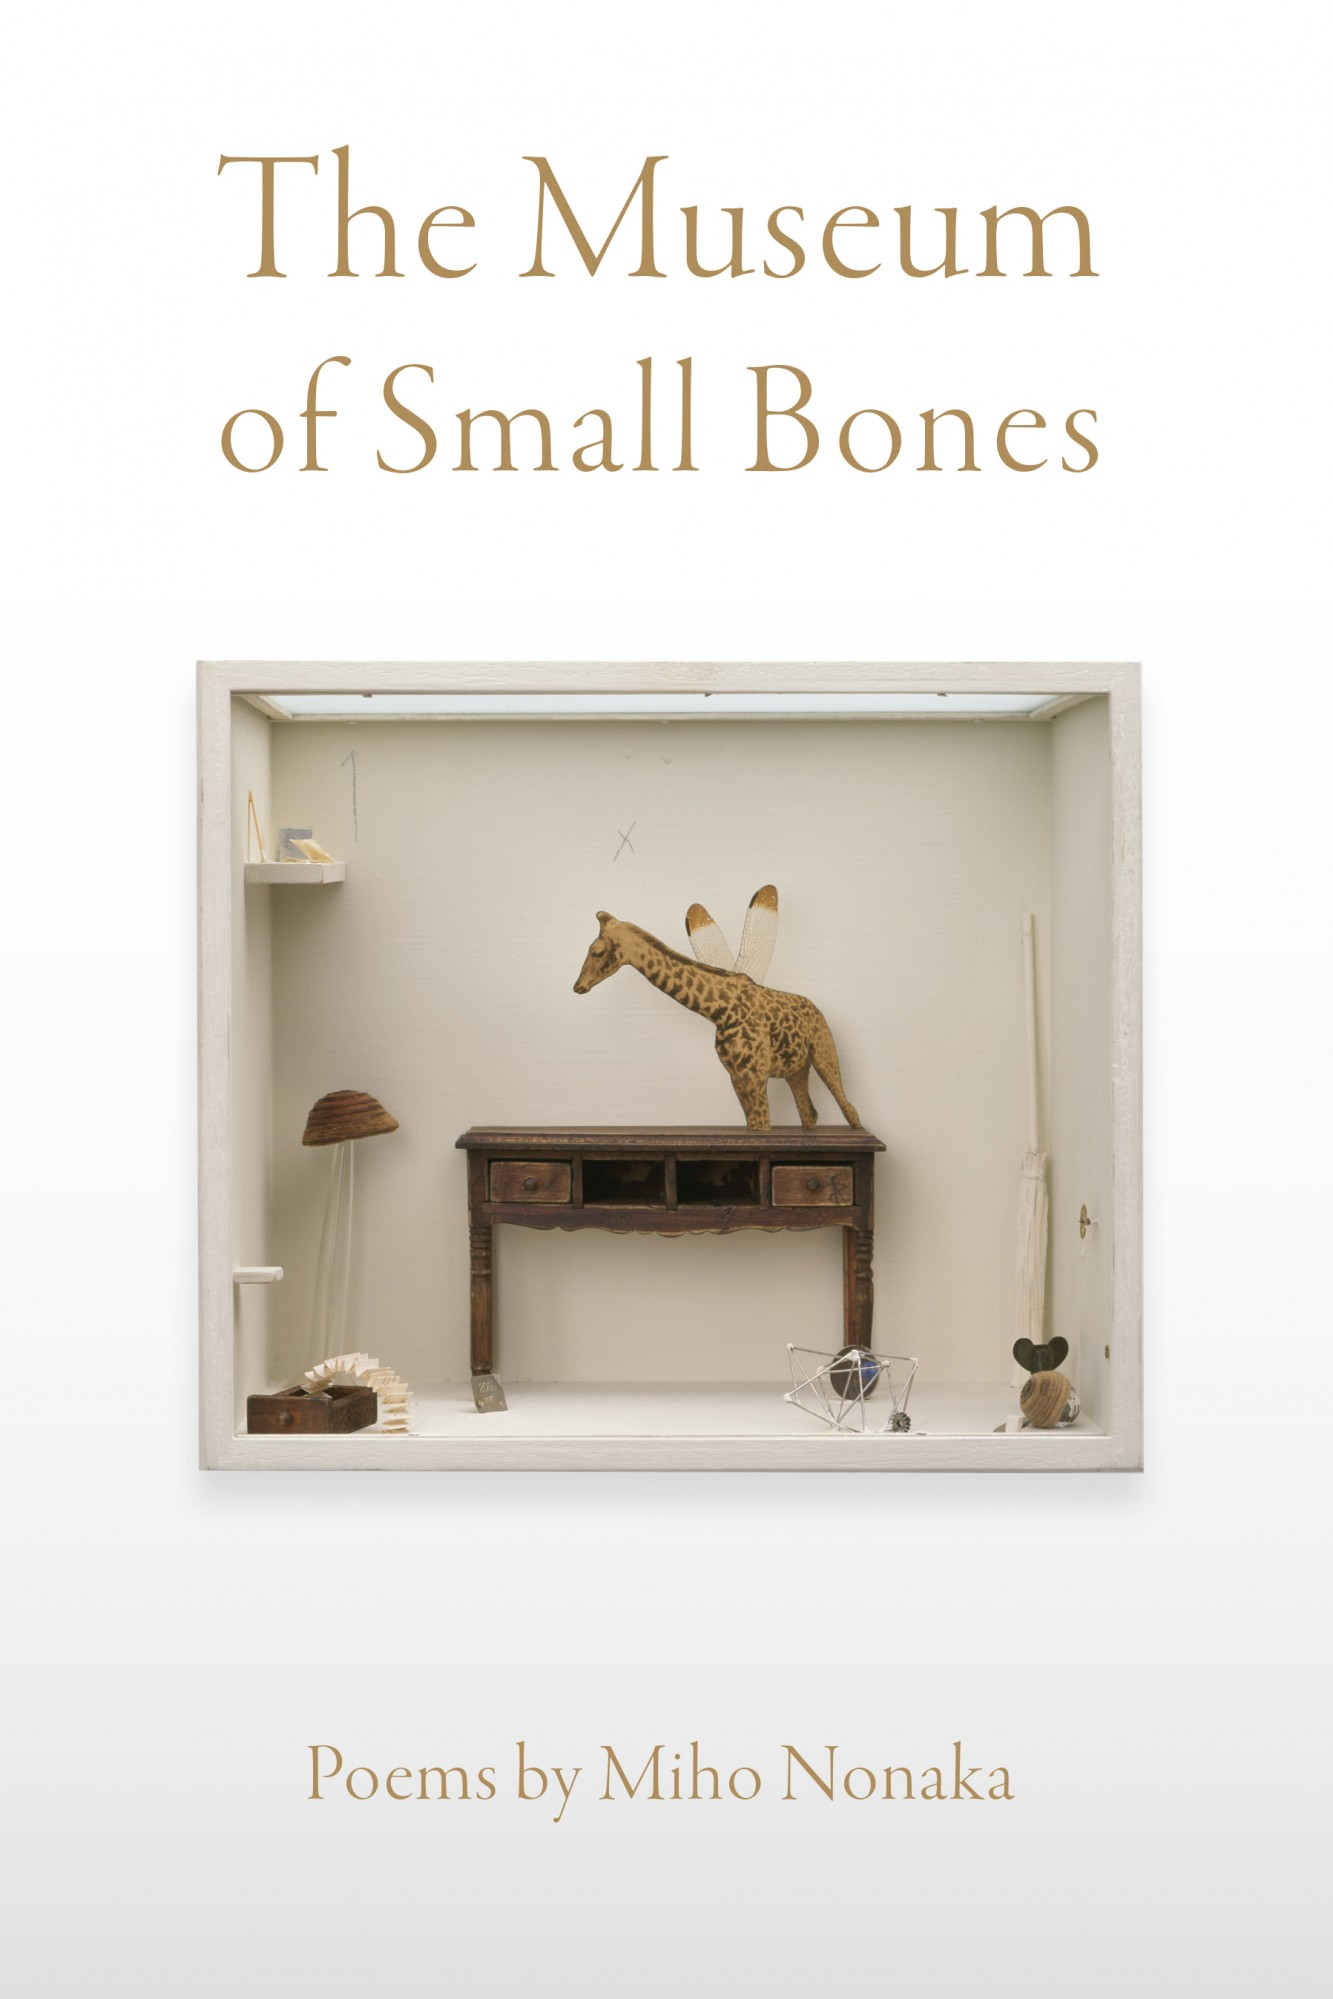 The Museum of Small Bones